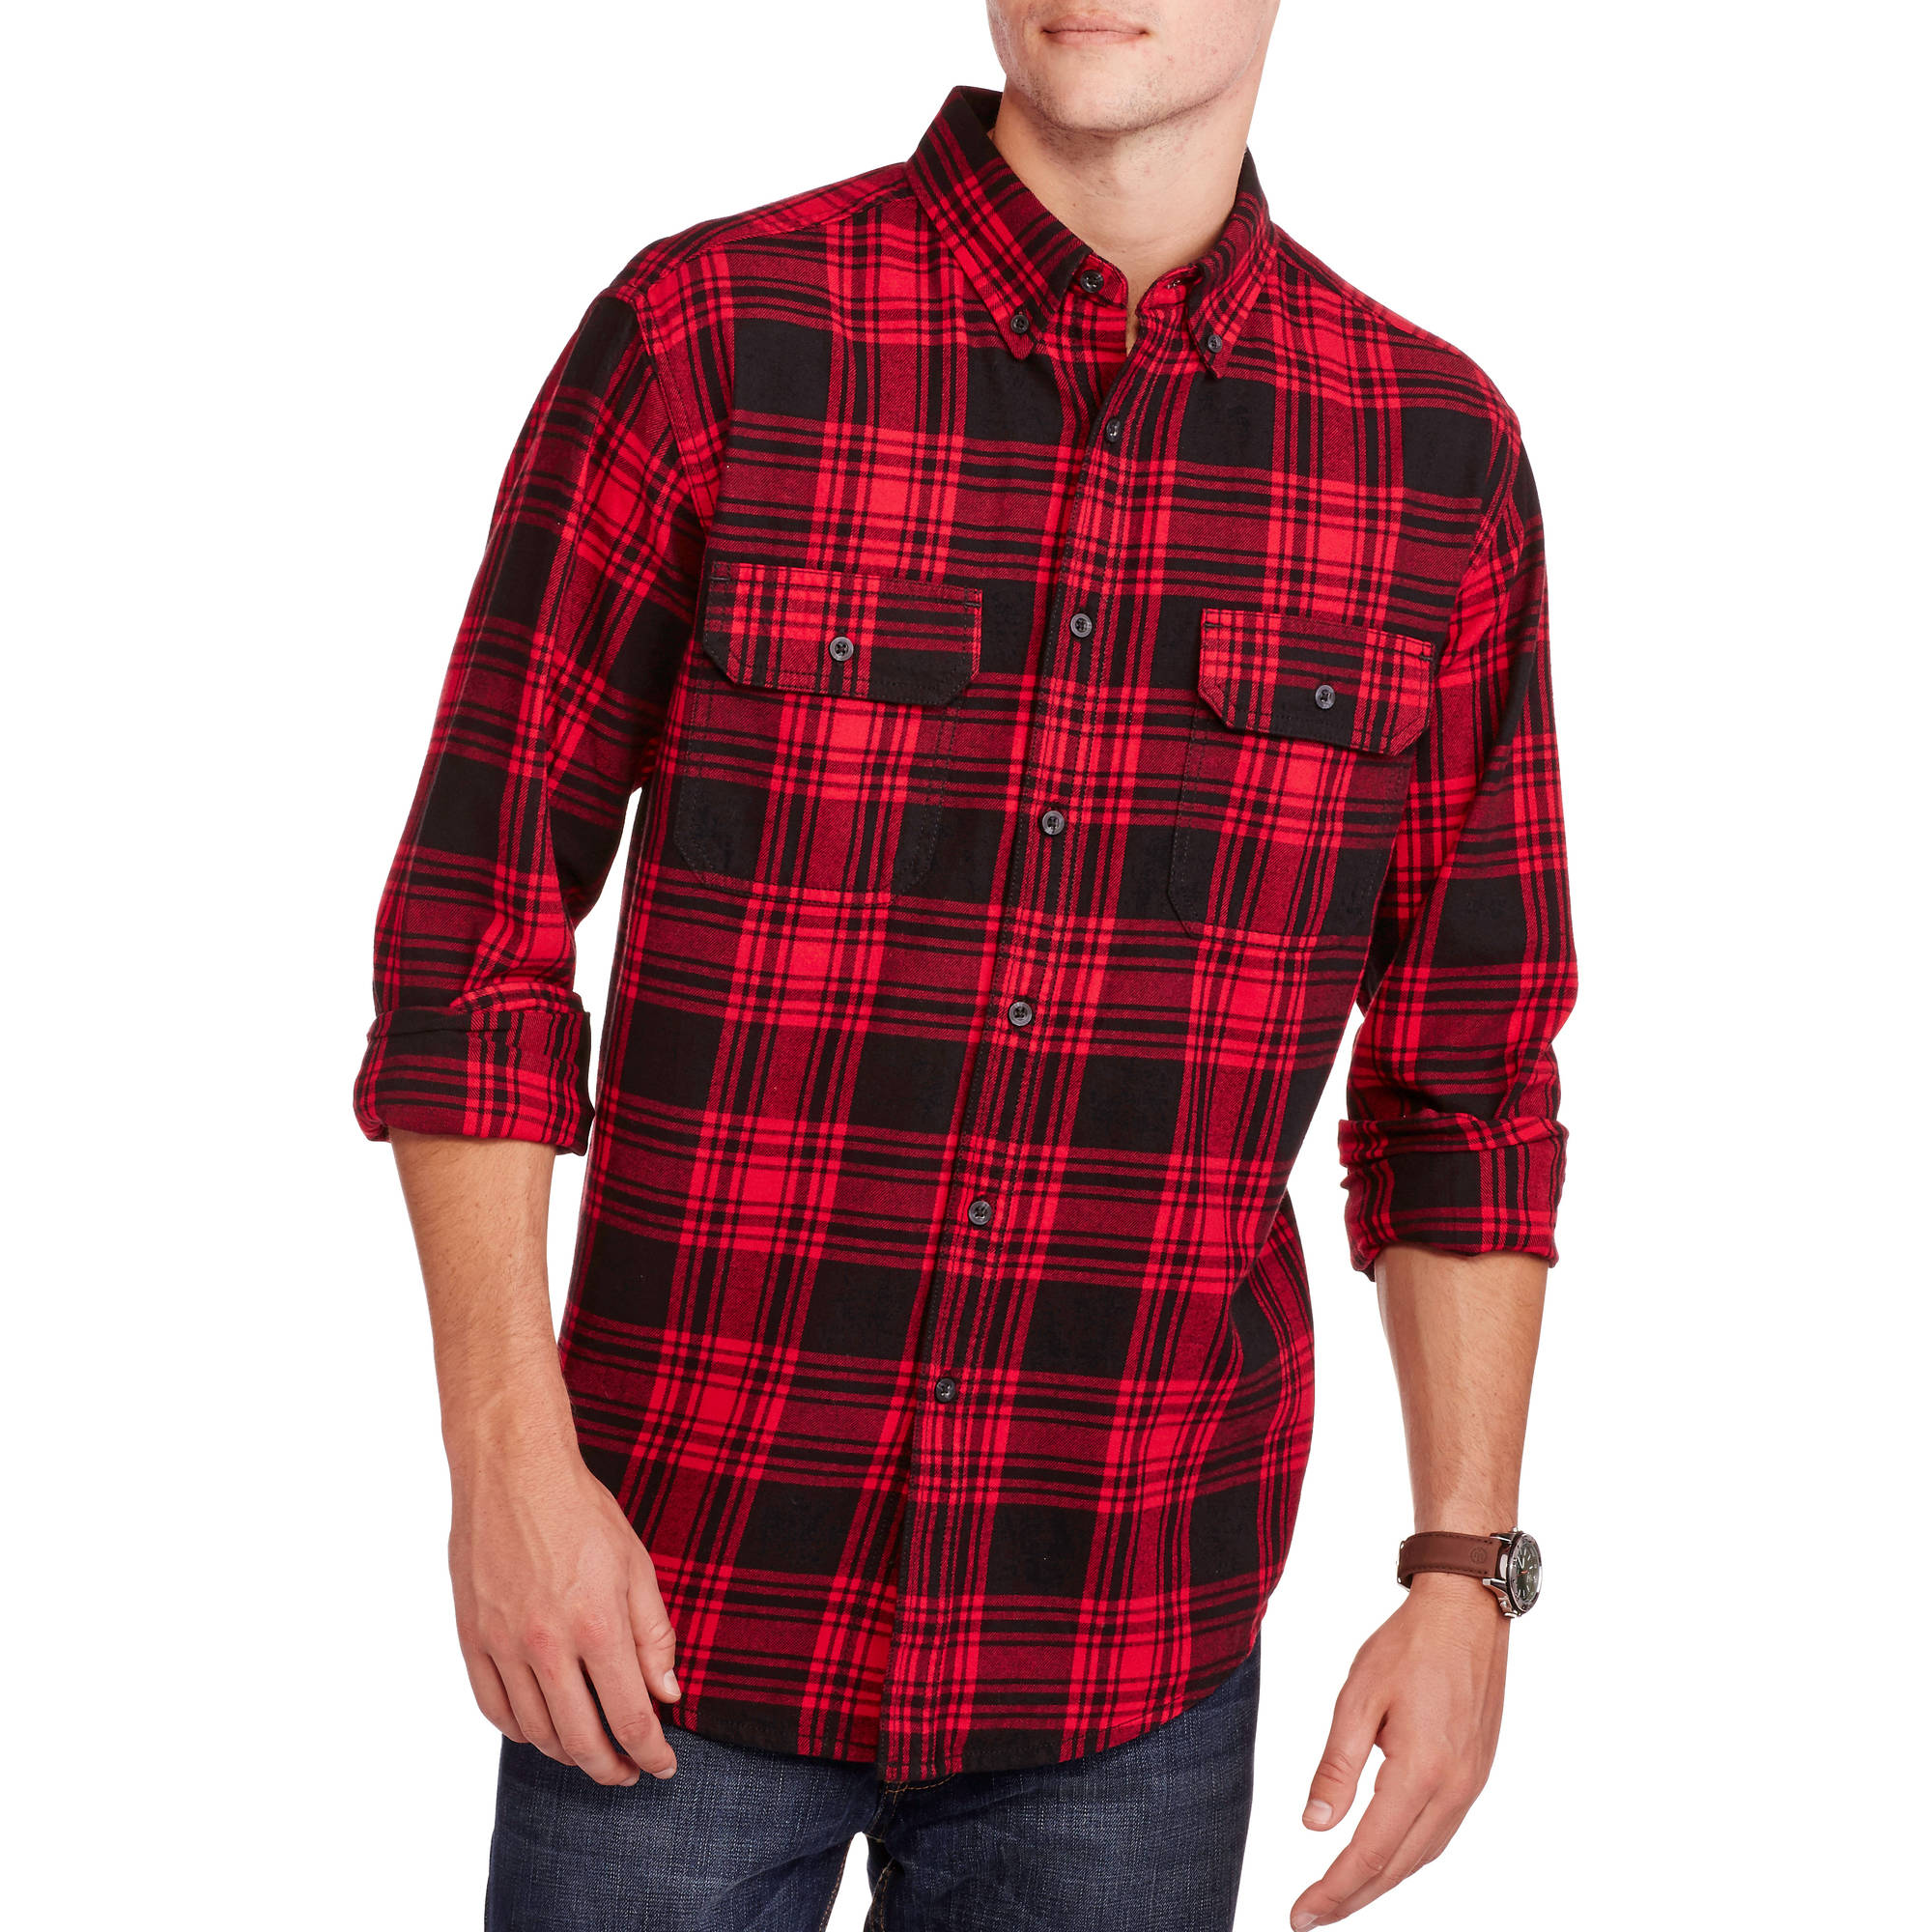 Shop online for Men's Flannel Shirts at learn-islam.gq Find innovative, modern takes on classic flannel shirts. Free Shipping. Free Returns. All the time.